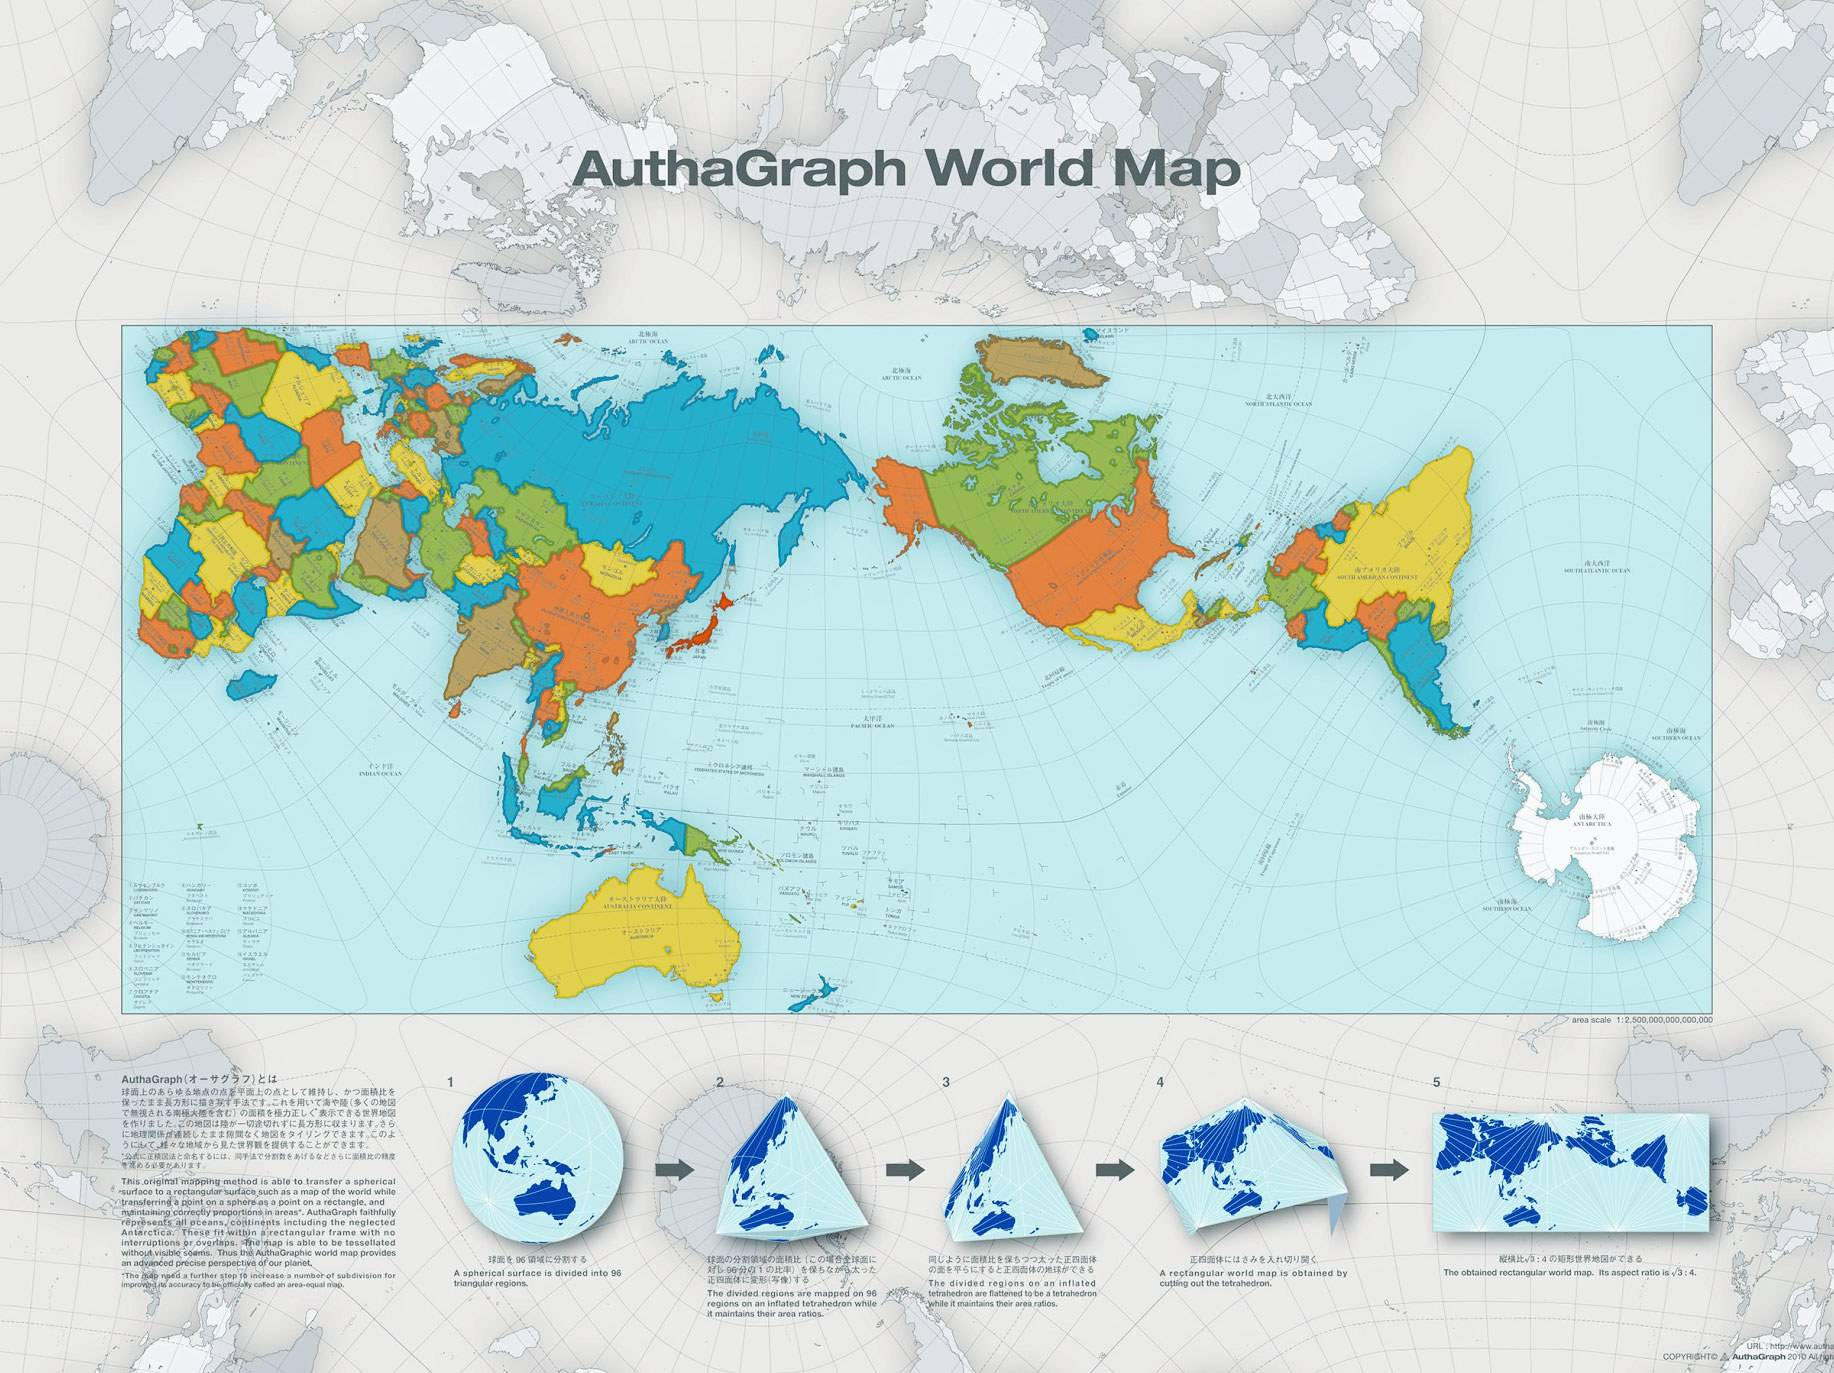 Why this geography map is perfect for homeschool shillerlearning as you can see authagraph faithfully represents all oceans and continents including the neglected antarctica according to the good design awards publicscrutiny Images